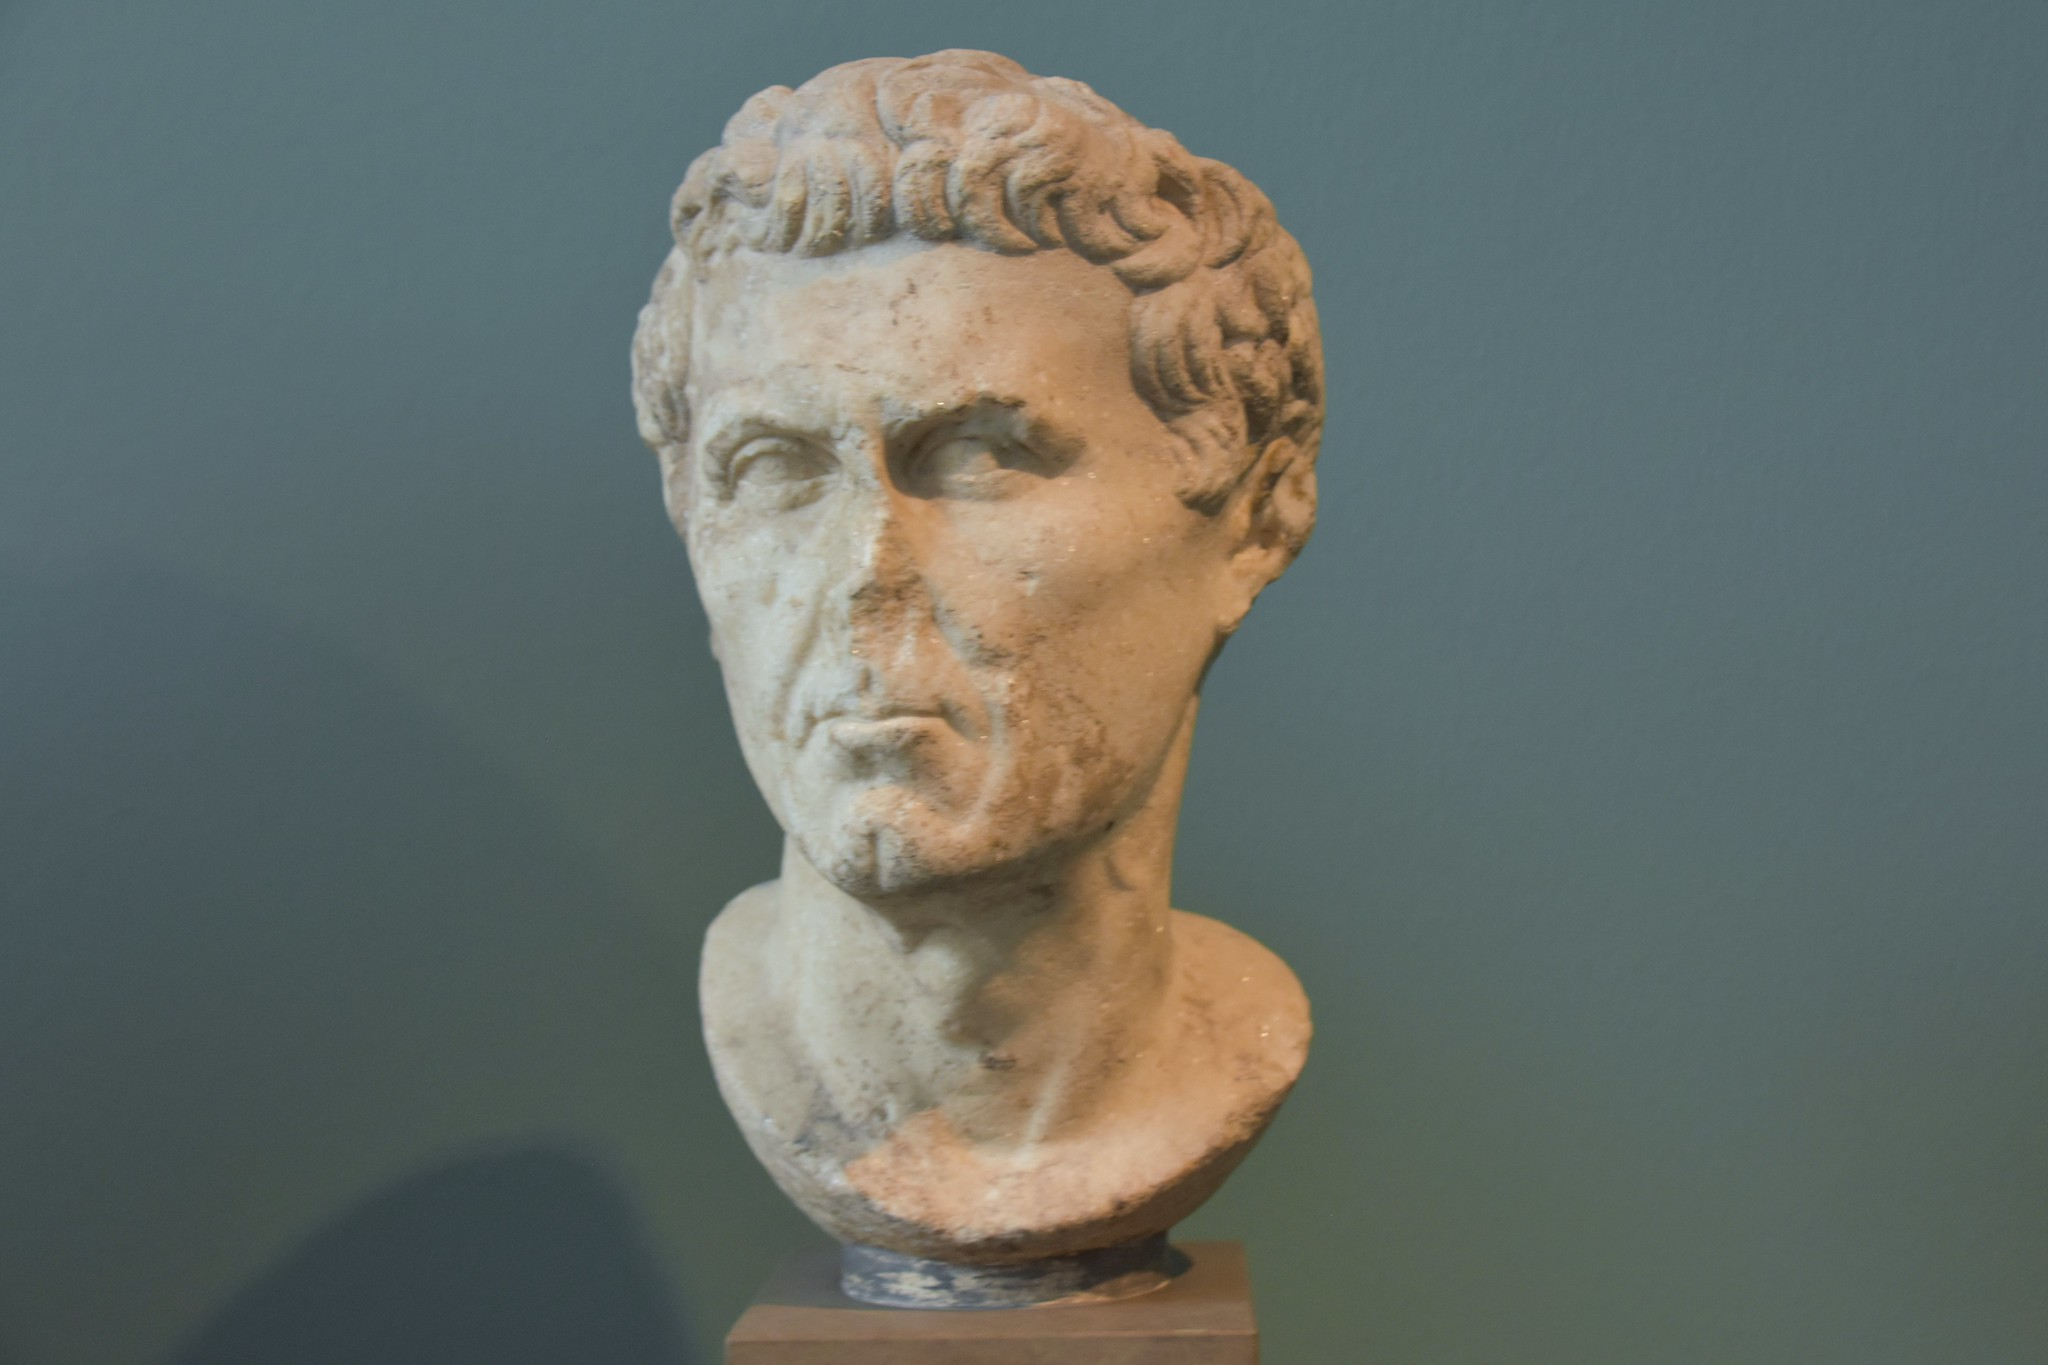 Emperor Hadrian facts